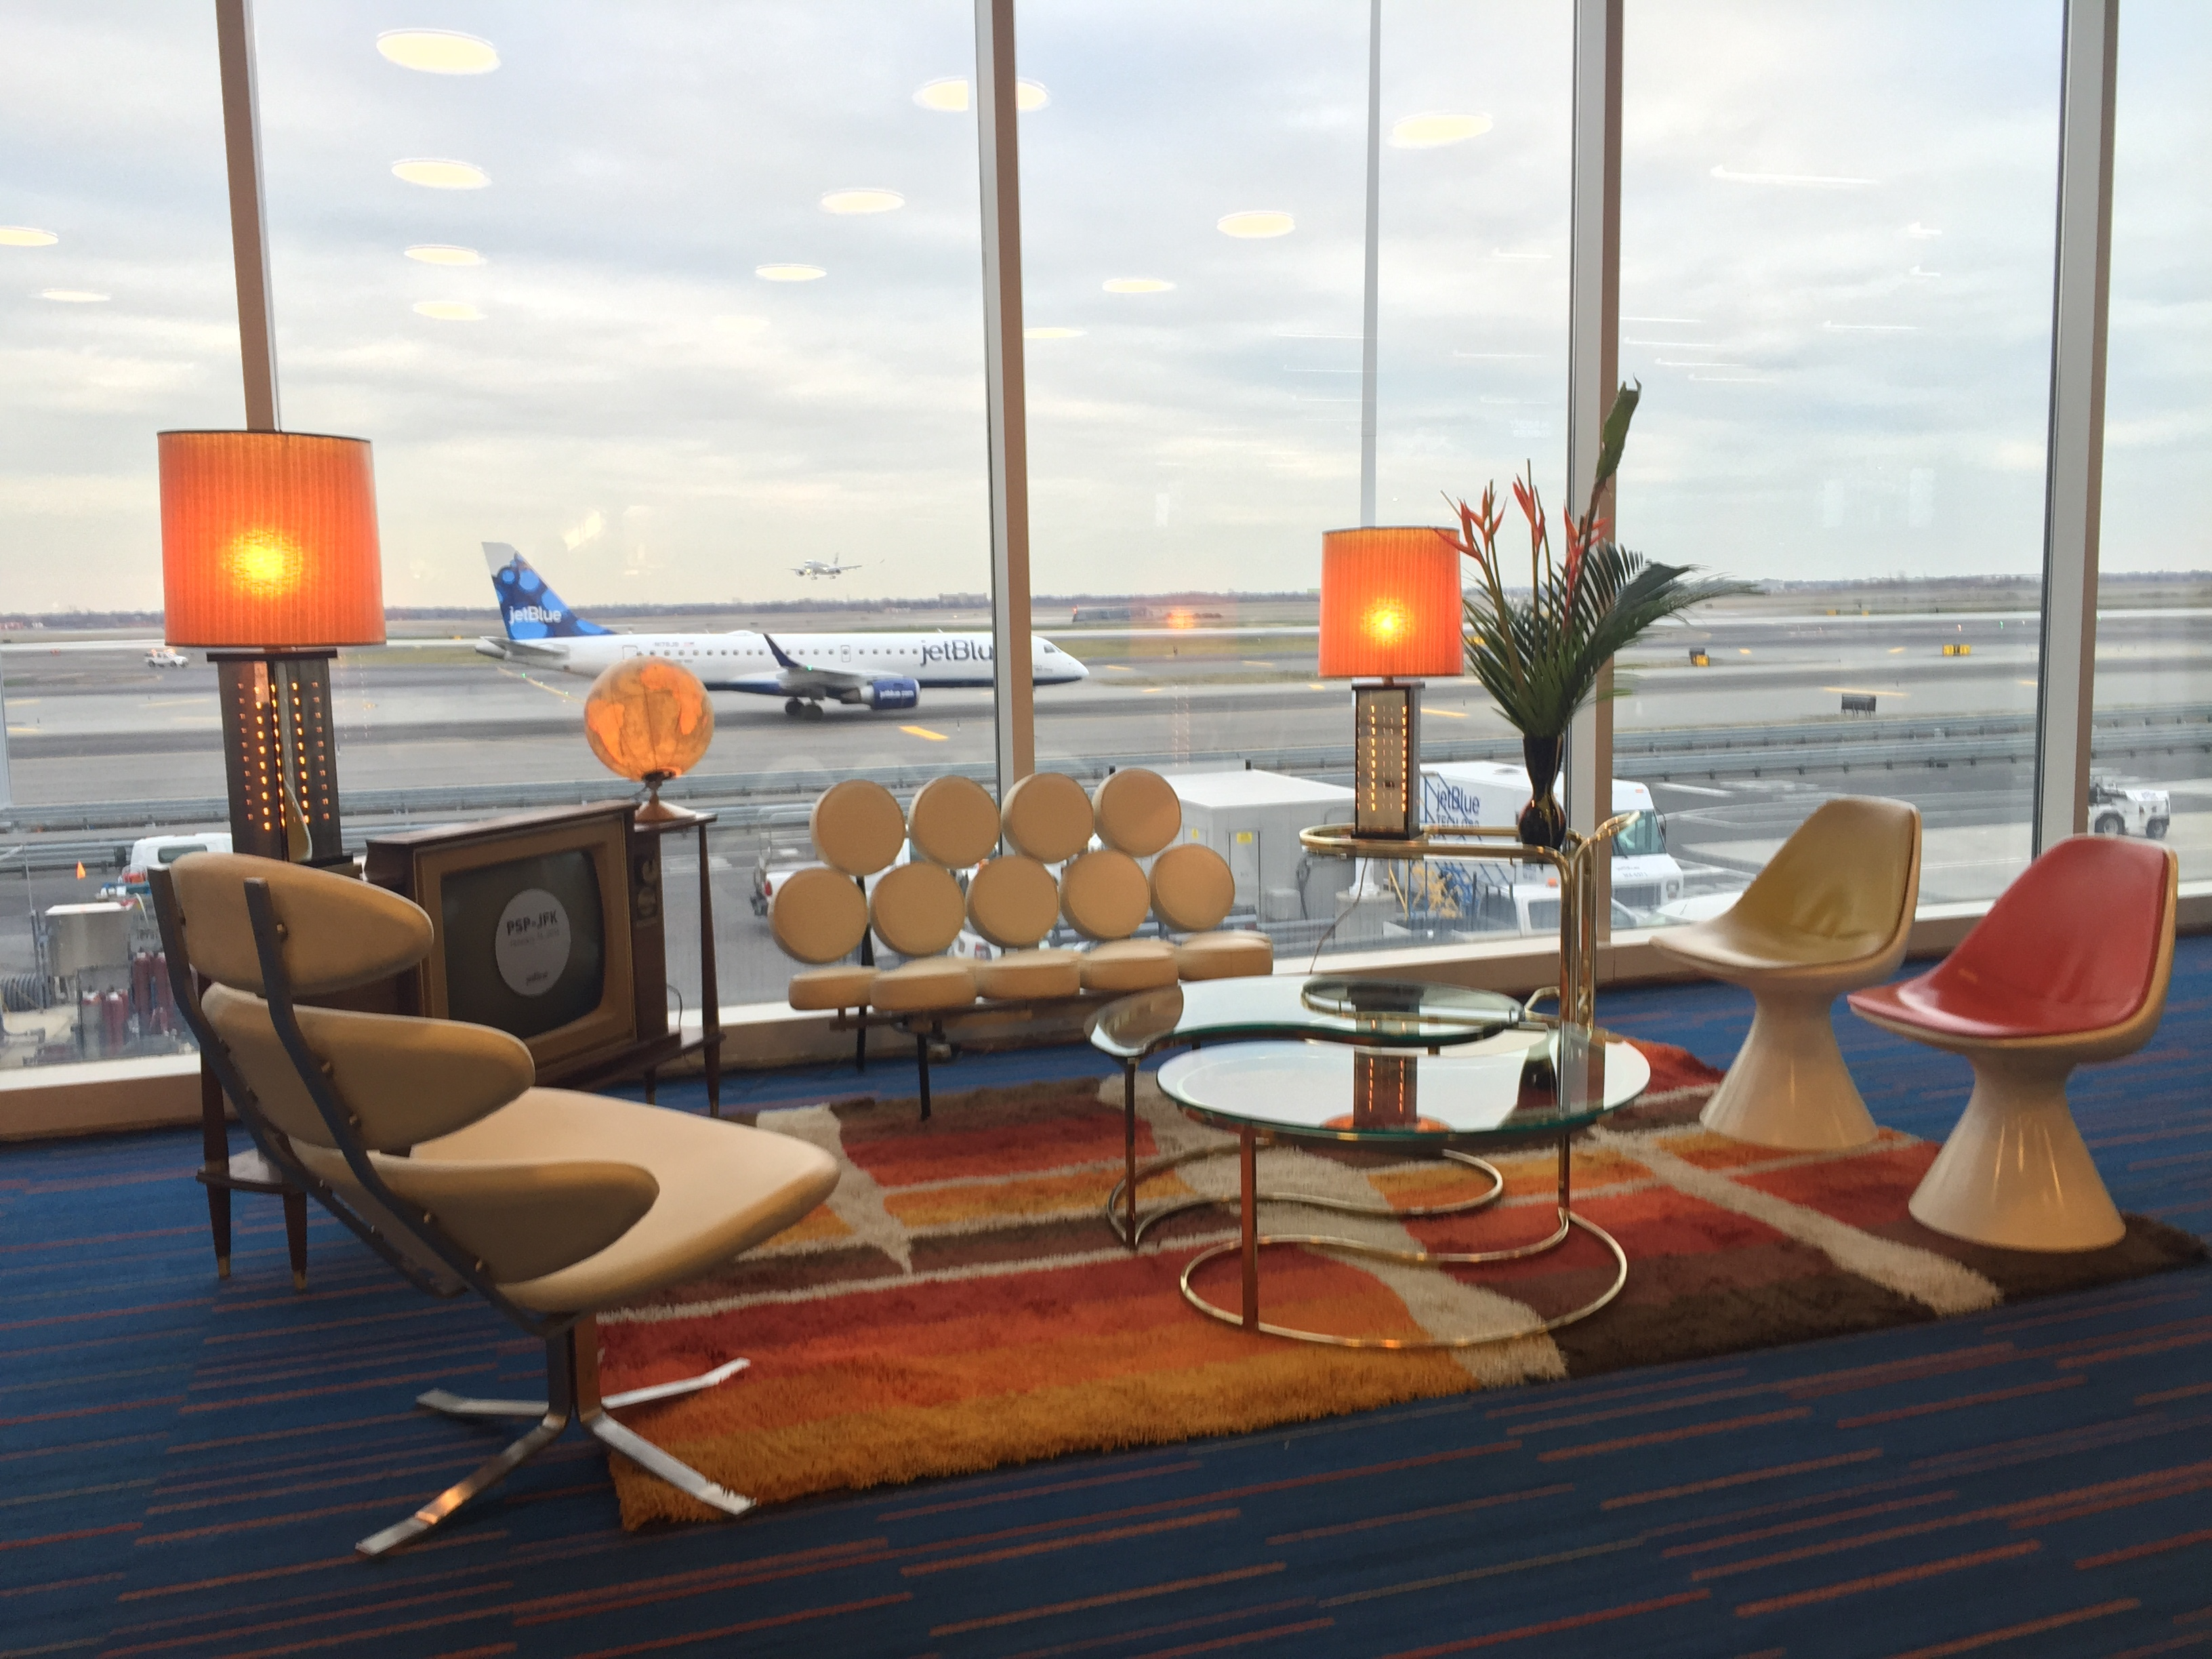 JetBlue Launches Palm Springs Service with Mid Century Modern